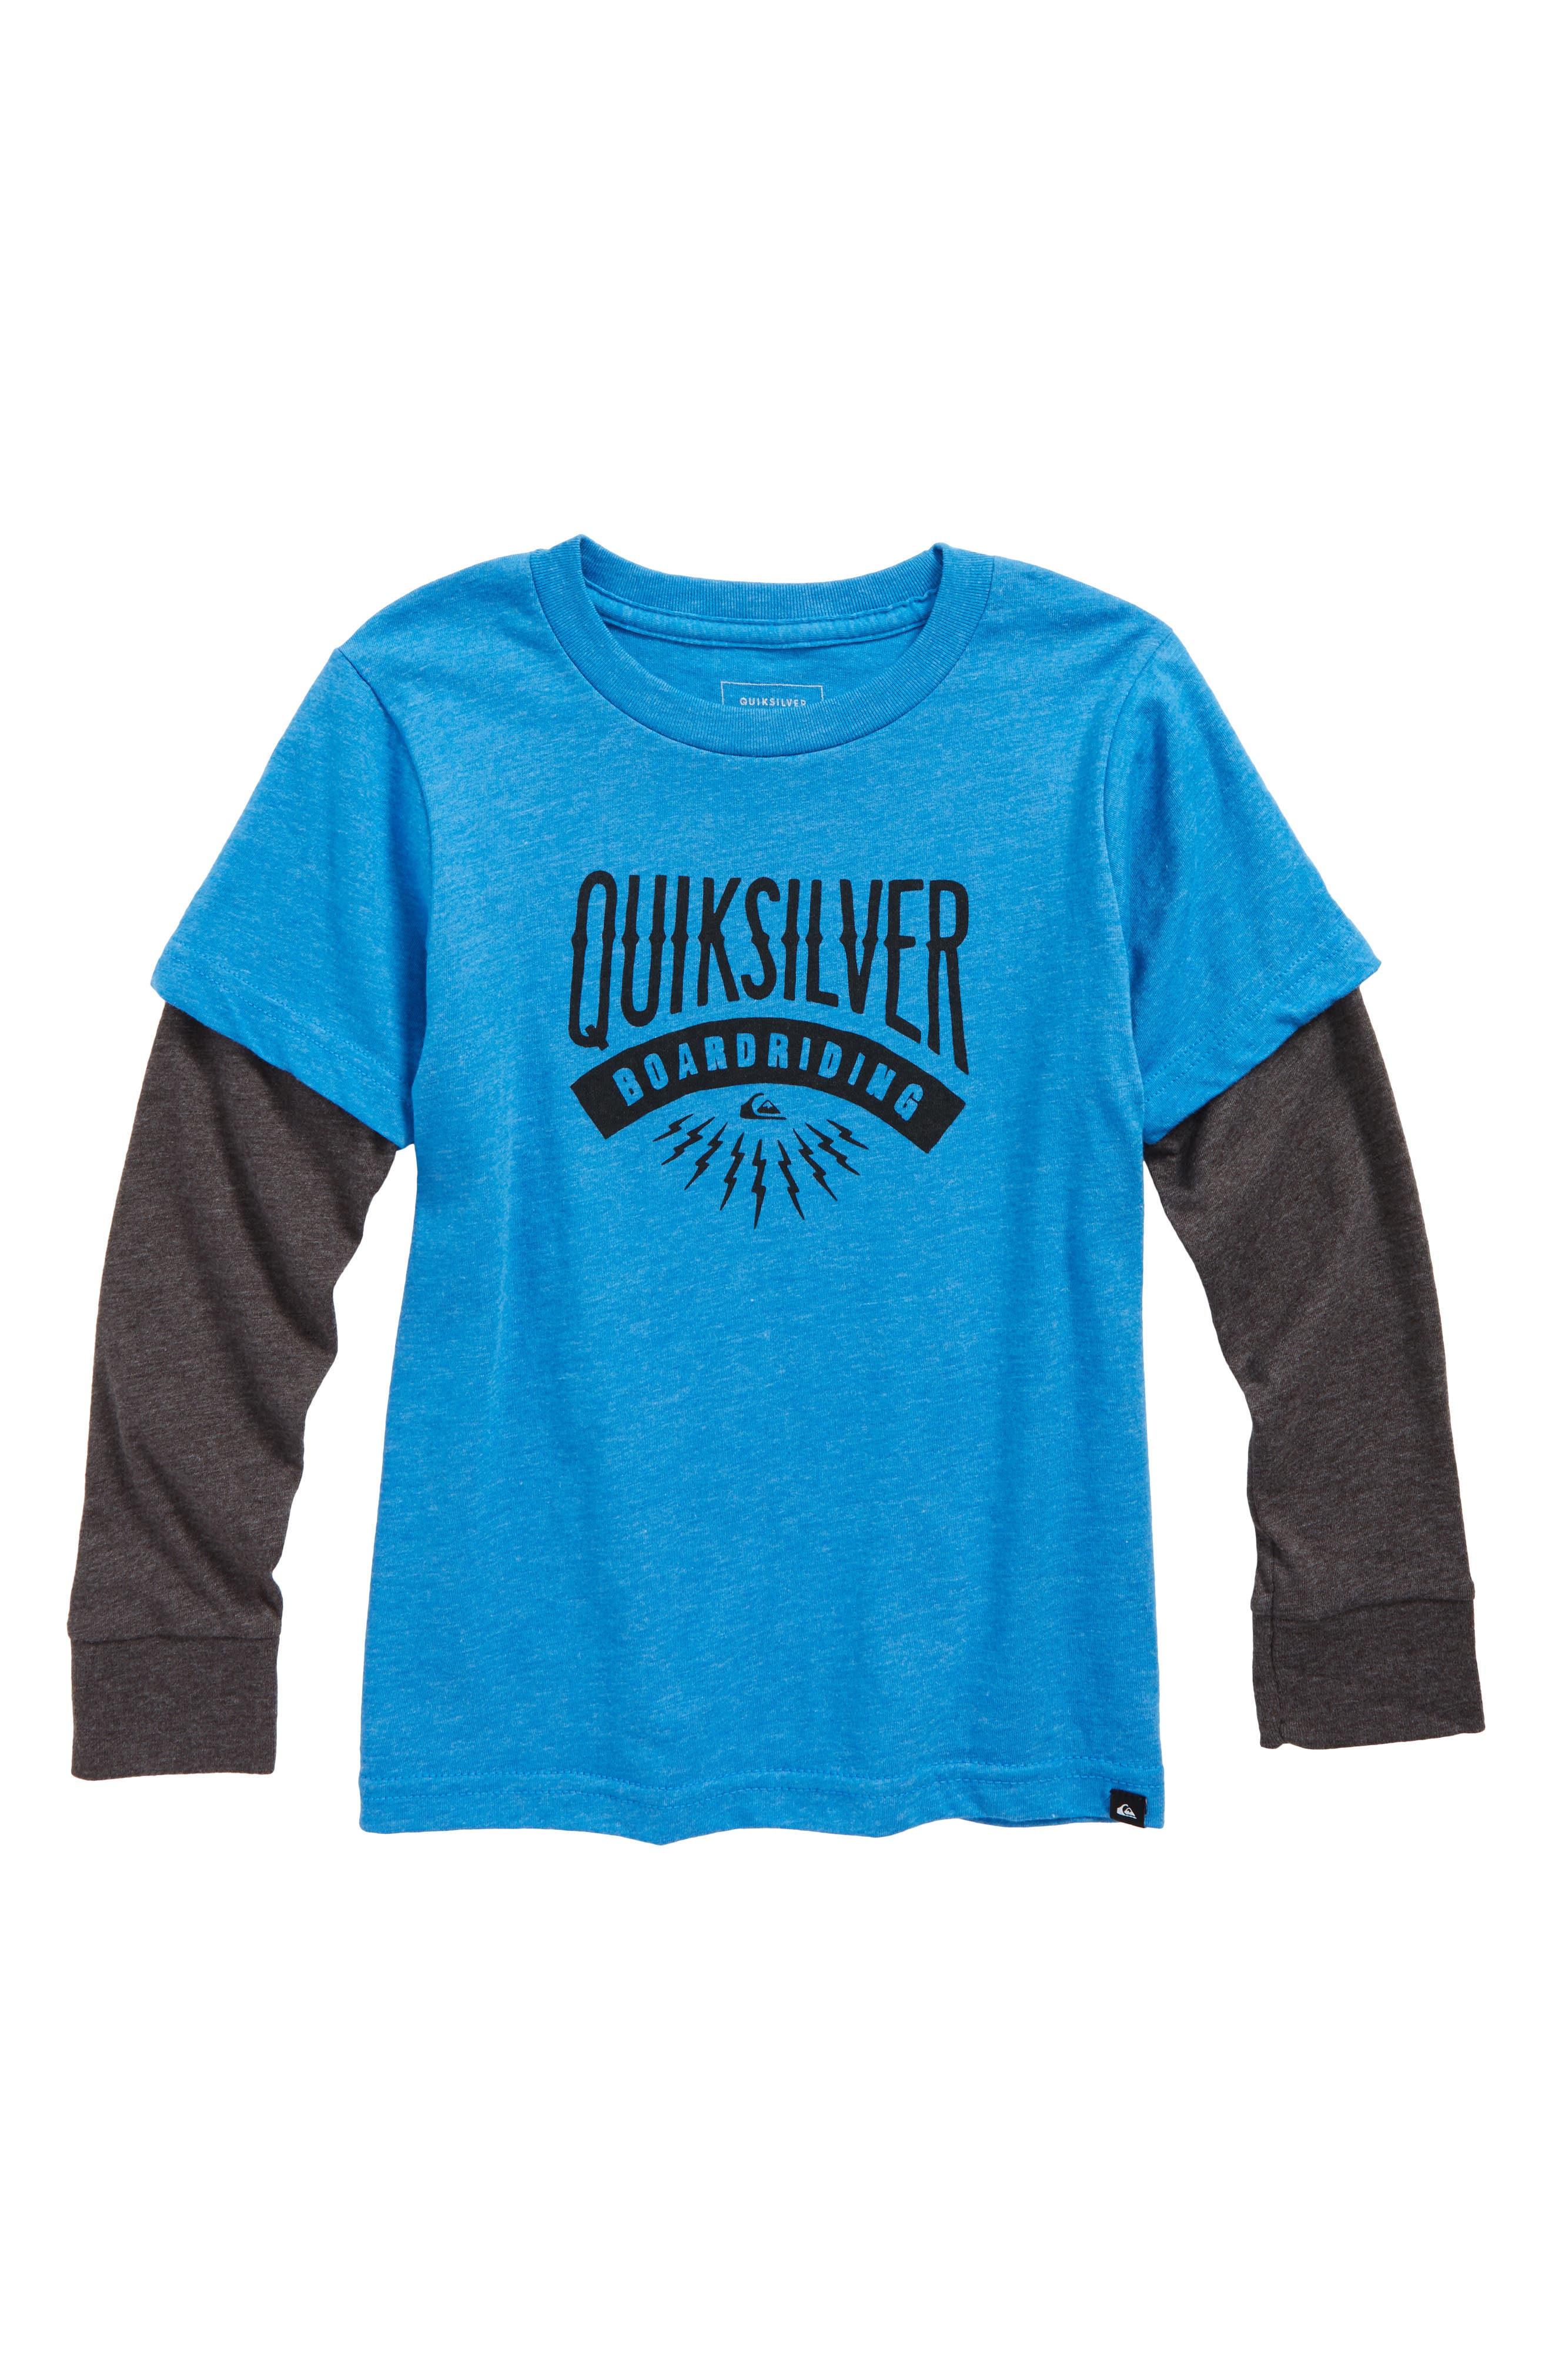 Quiksilver Sunset Co. Graphic T-Shirt (Toddler Boys & Little Boys)